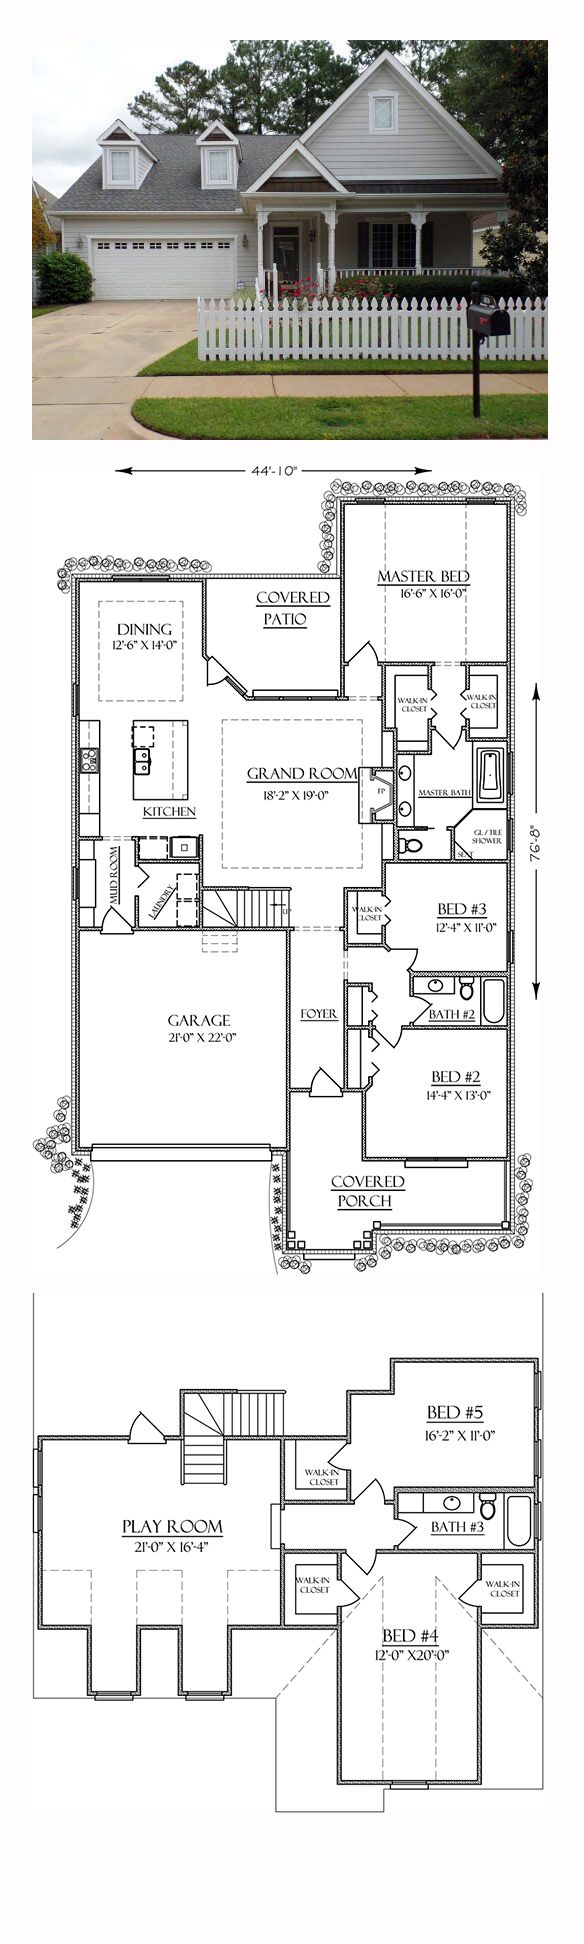 Bungalow country traditional house plan 74756